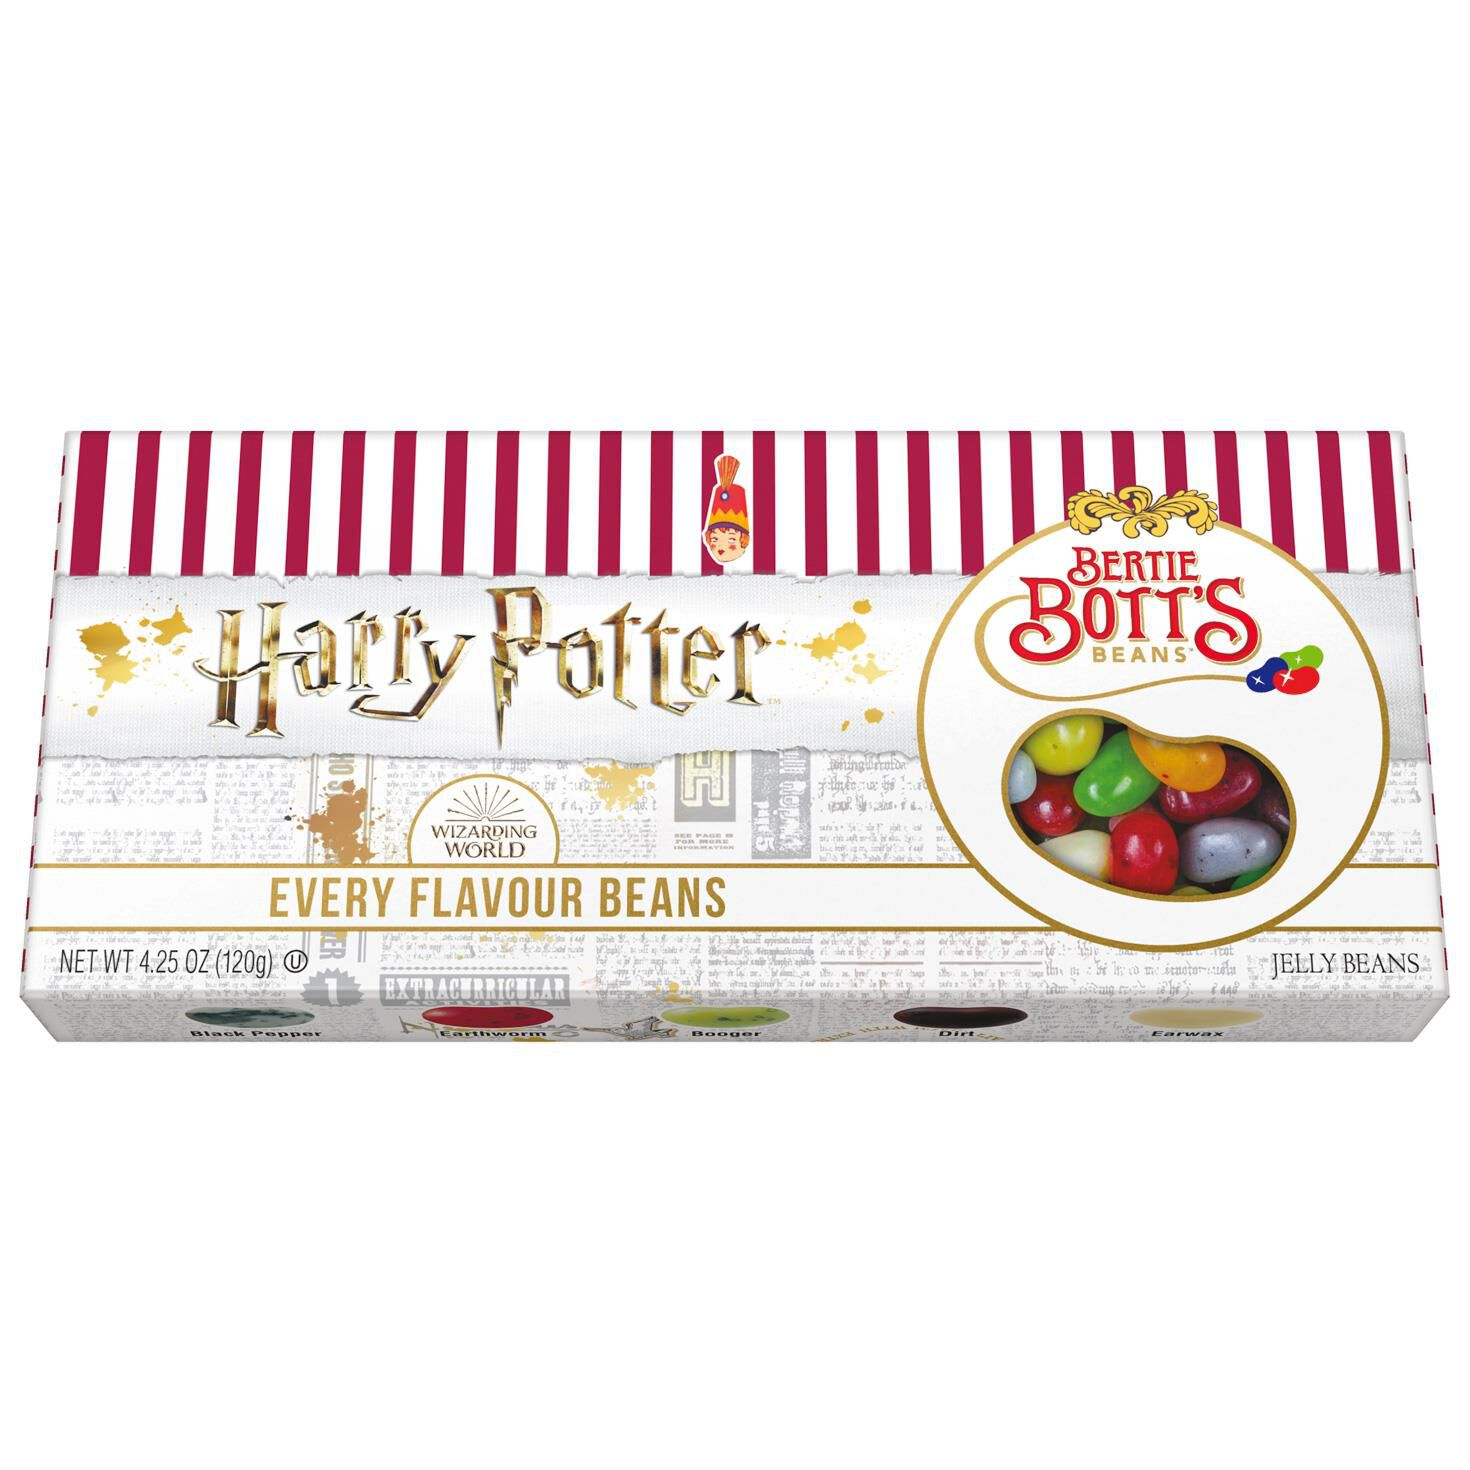 image regarding Bertie Botts Every Flavor Beans Printable named Jelly Tummy Harry Potter Bertie Botts Just about every Flavour Beans, 4.25 oz.